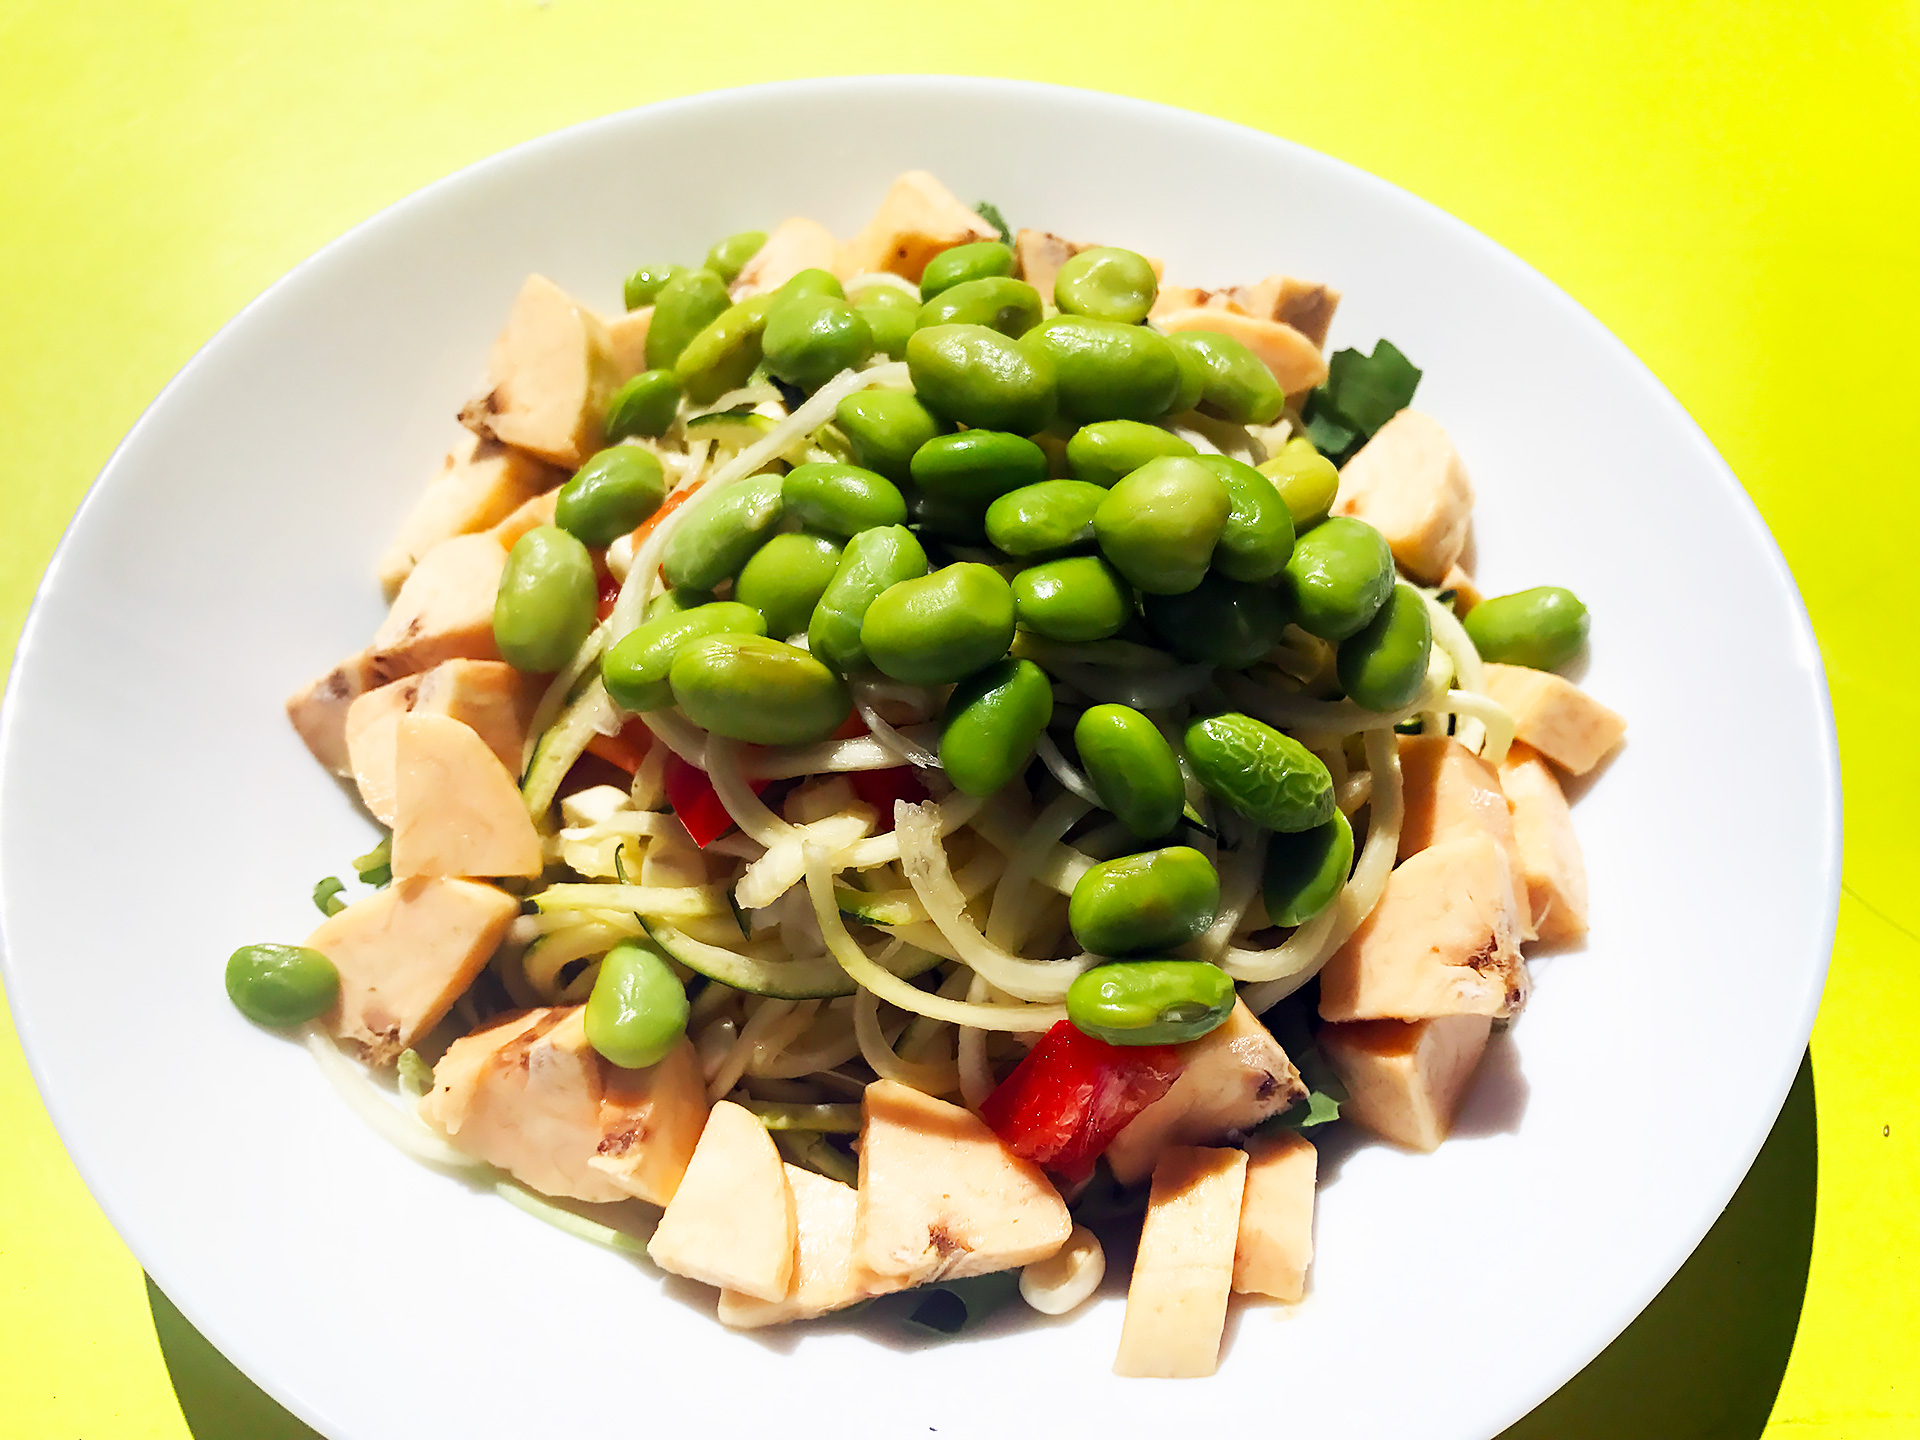 A raw plantain salad with edamame.